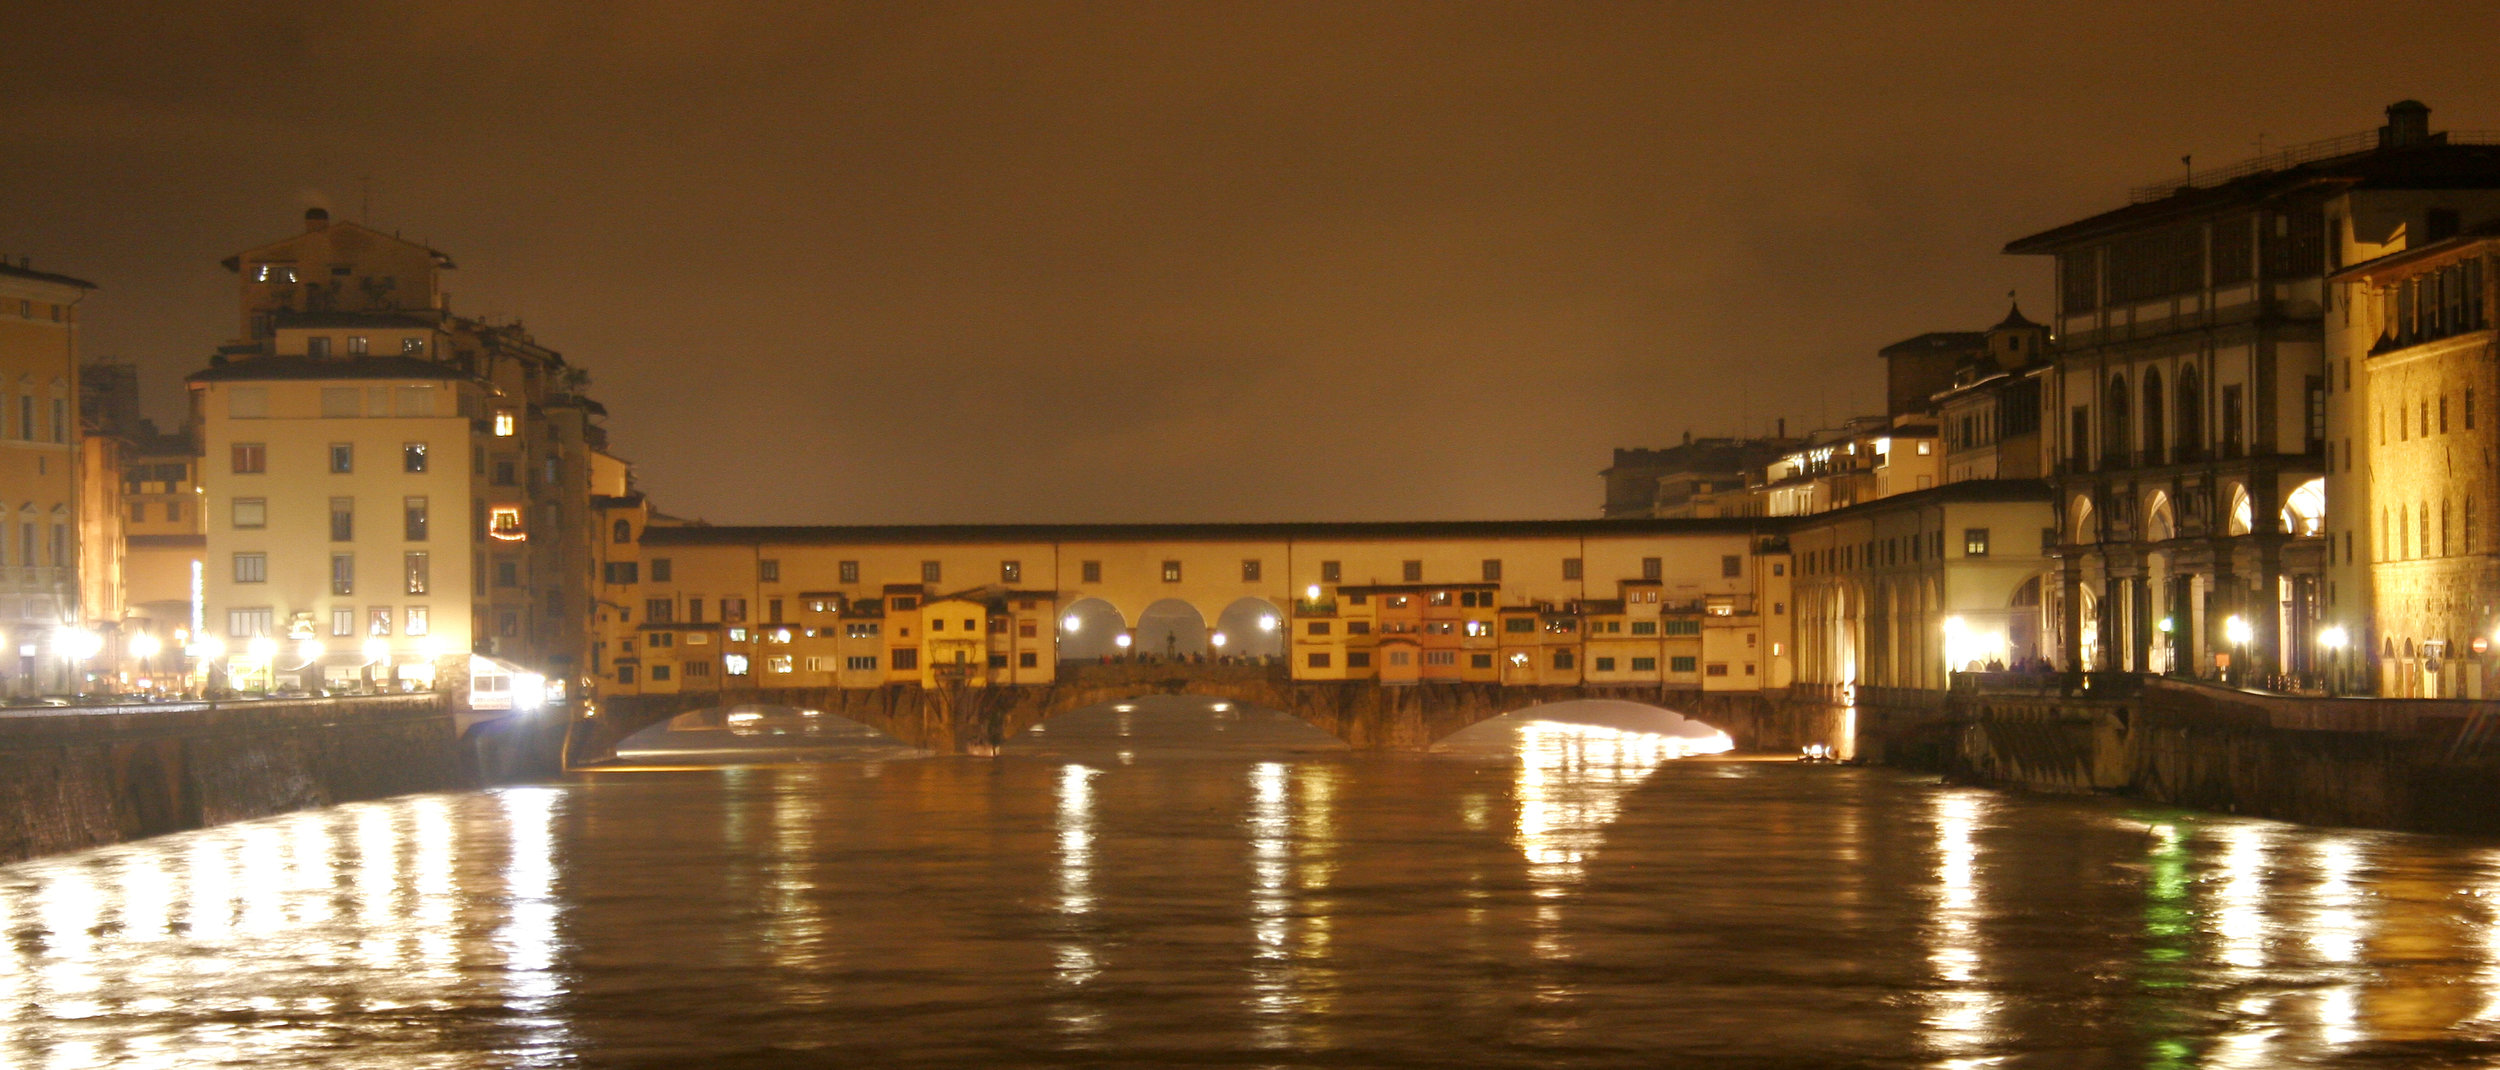 #7 Nystedt+Ponte+Vecchio.jpg